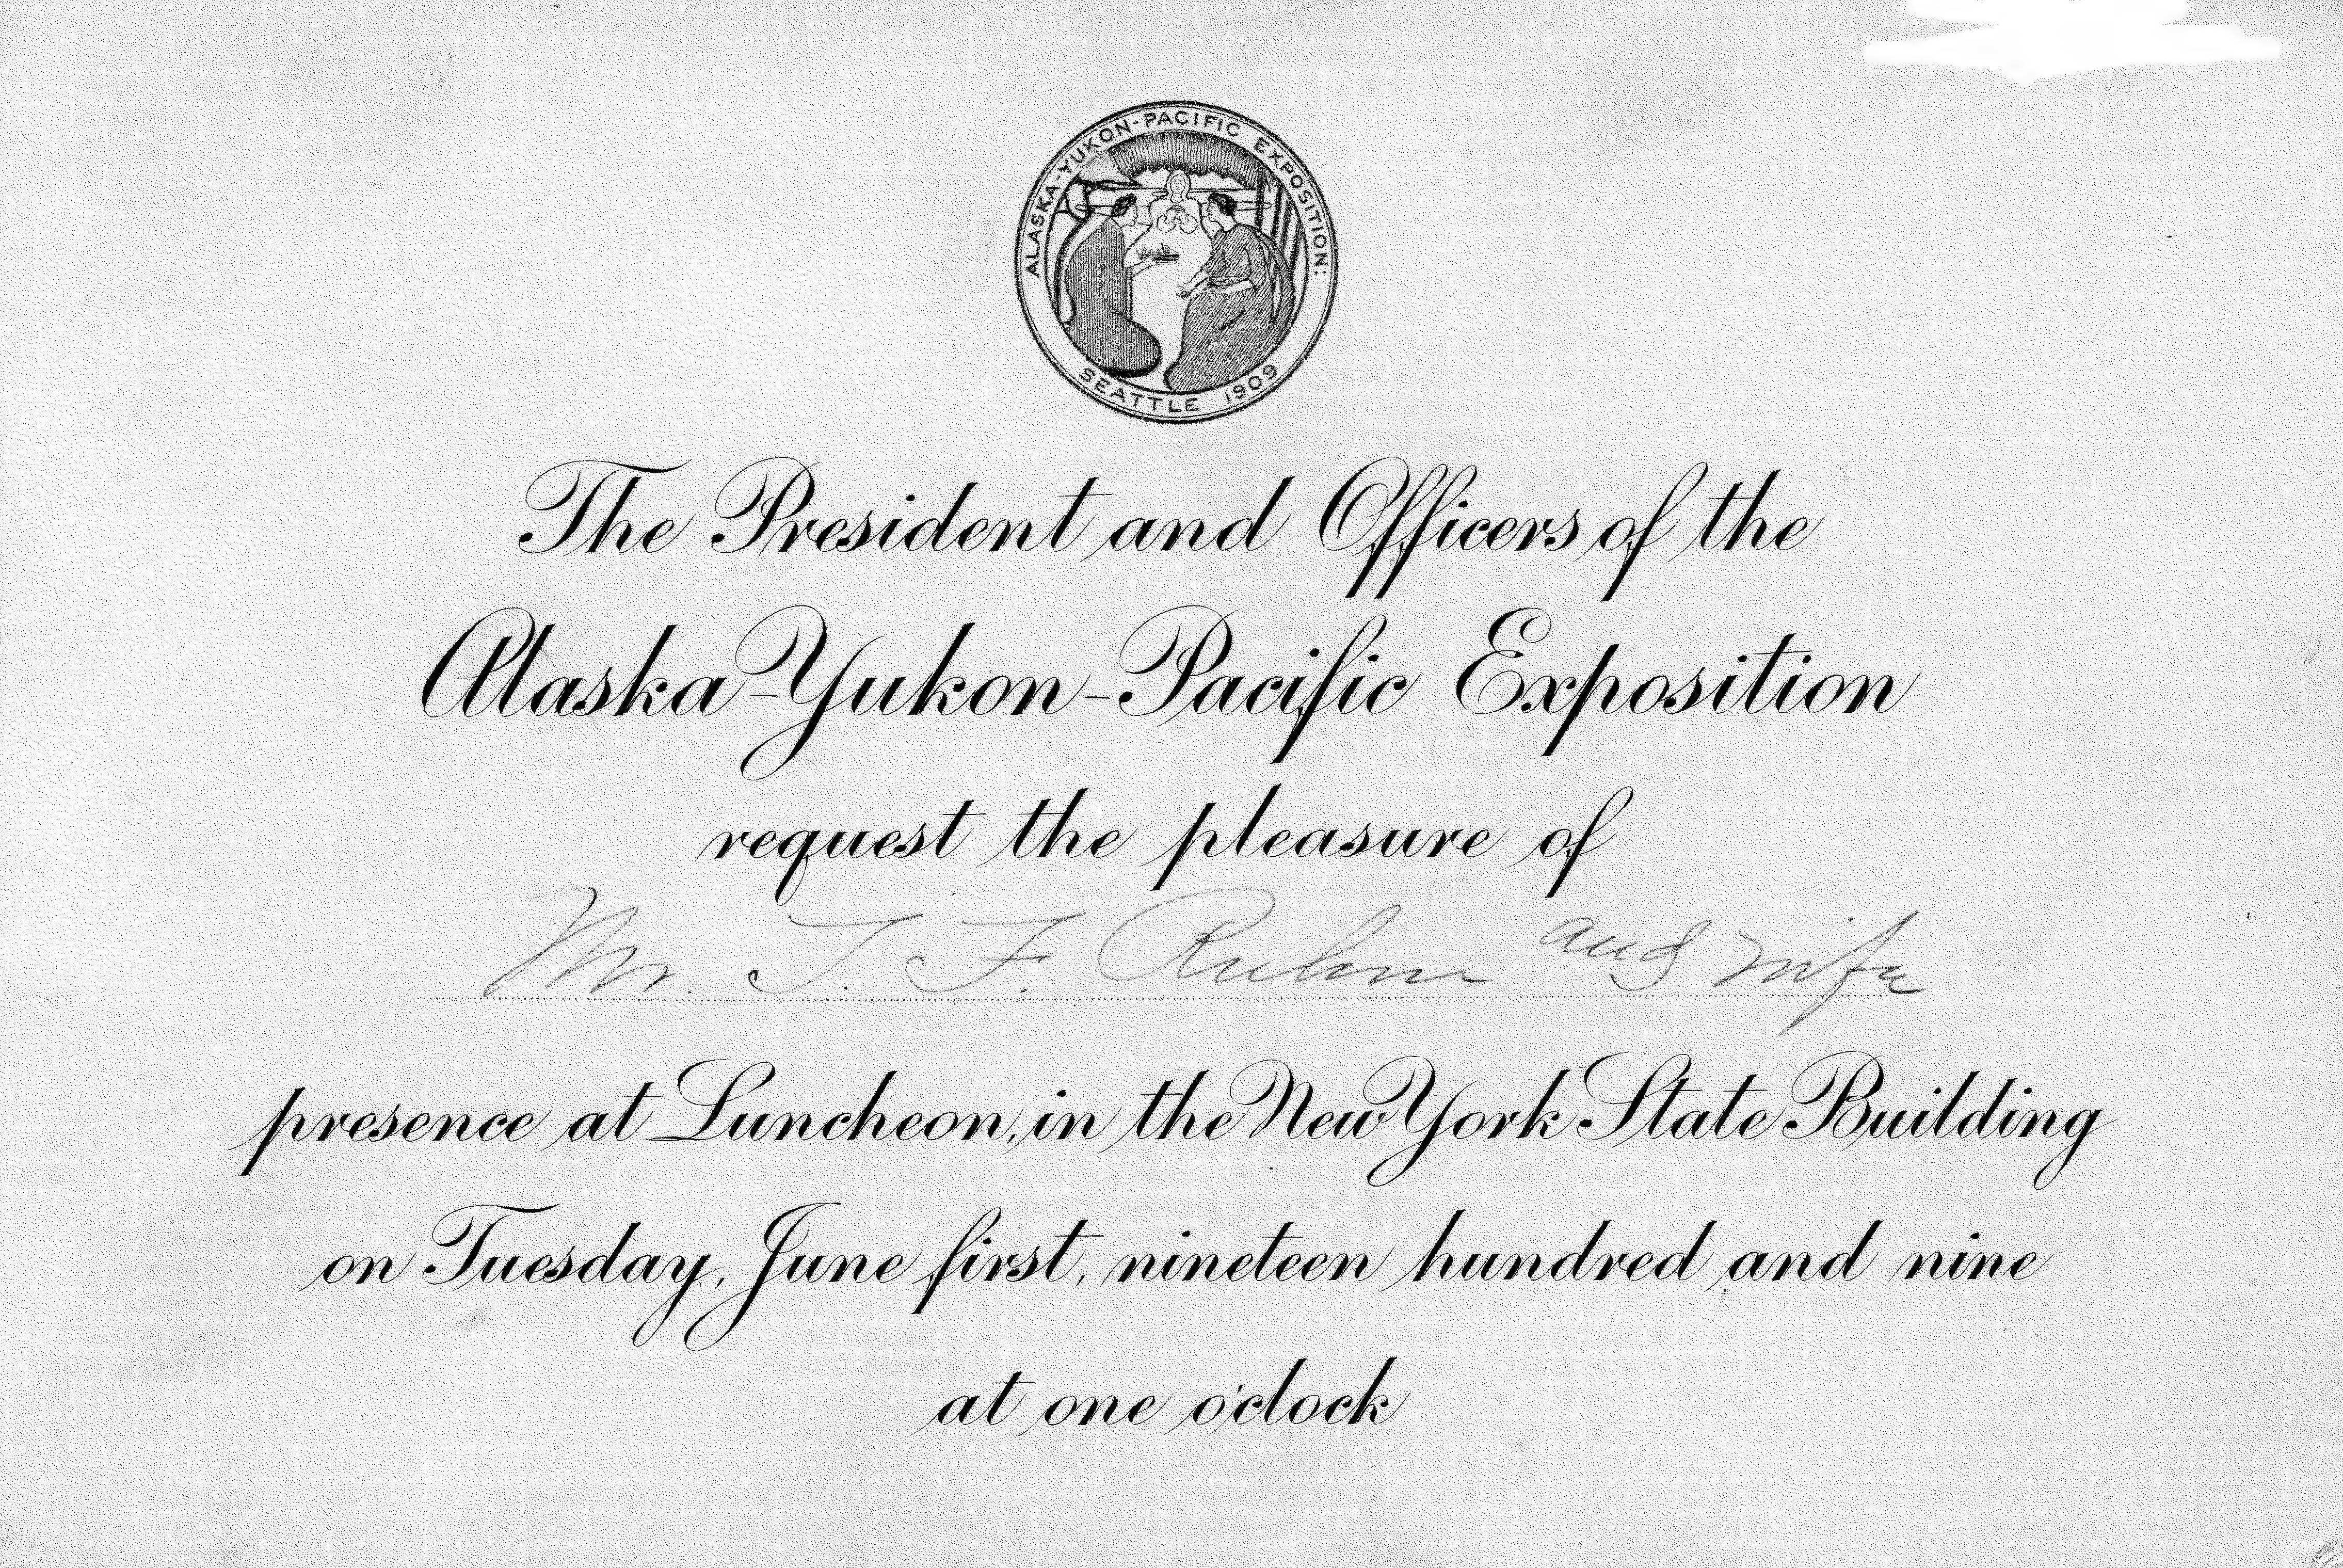 Fileinvitation and admission card from the president and officers fileinvitation and admission card from the president and officers of the alaska yukon stopboris Gallery